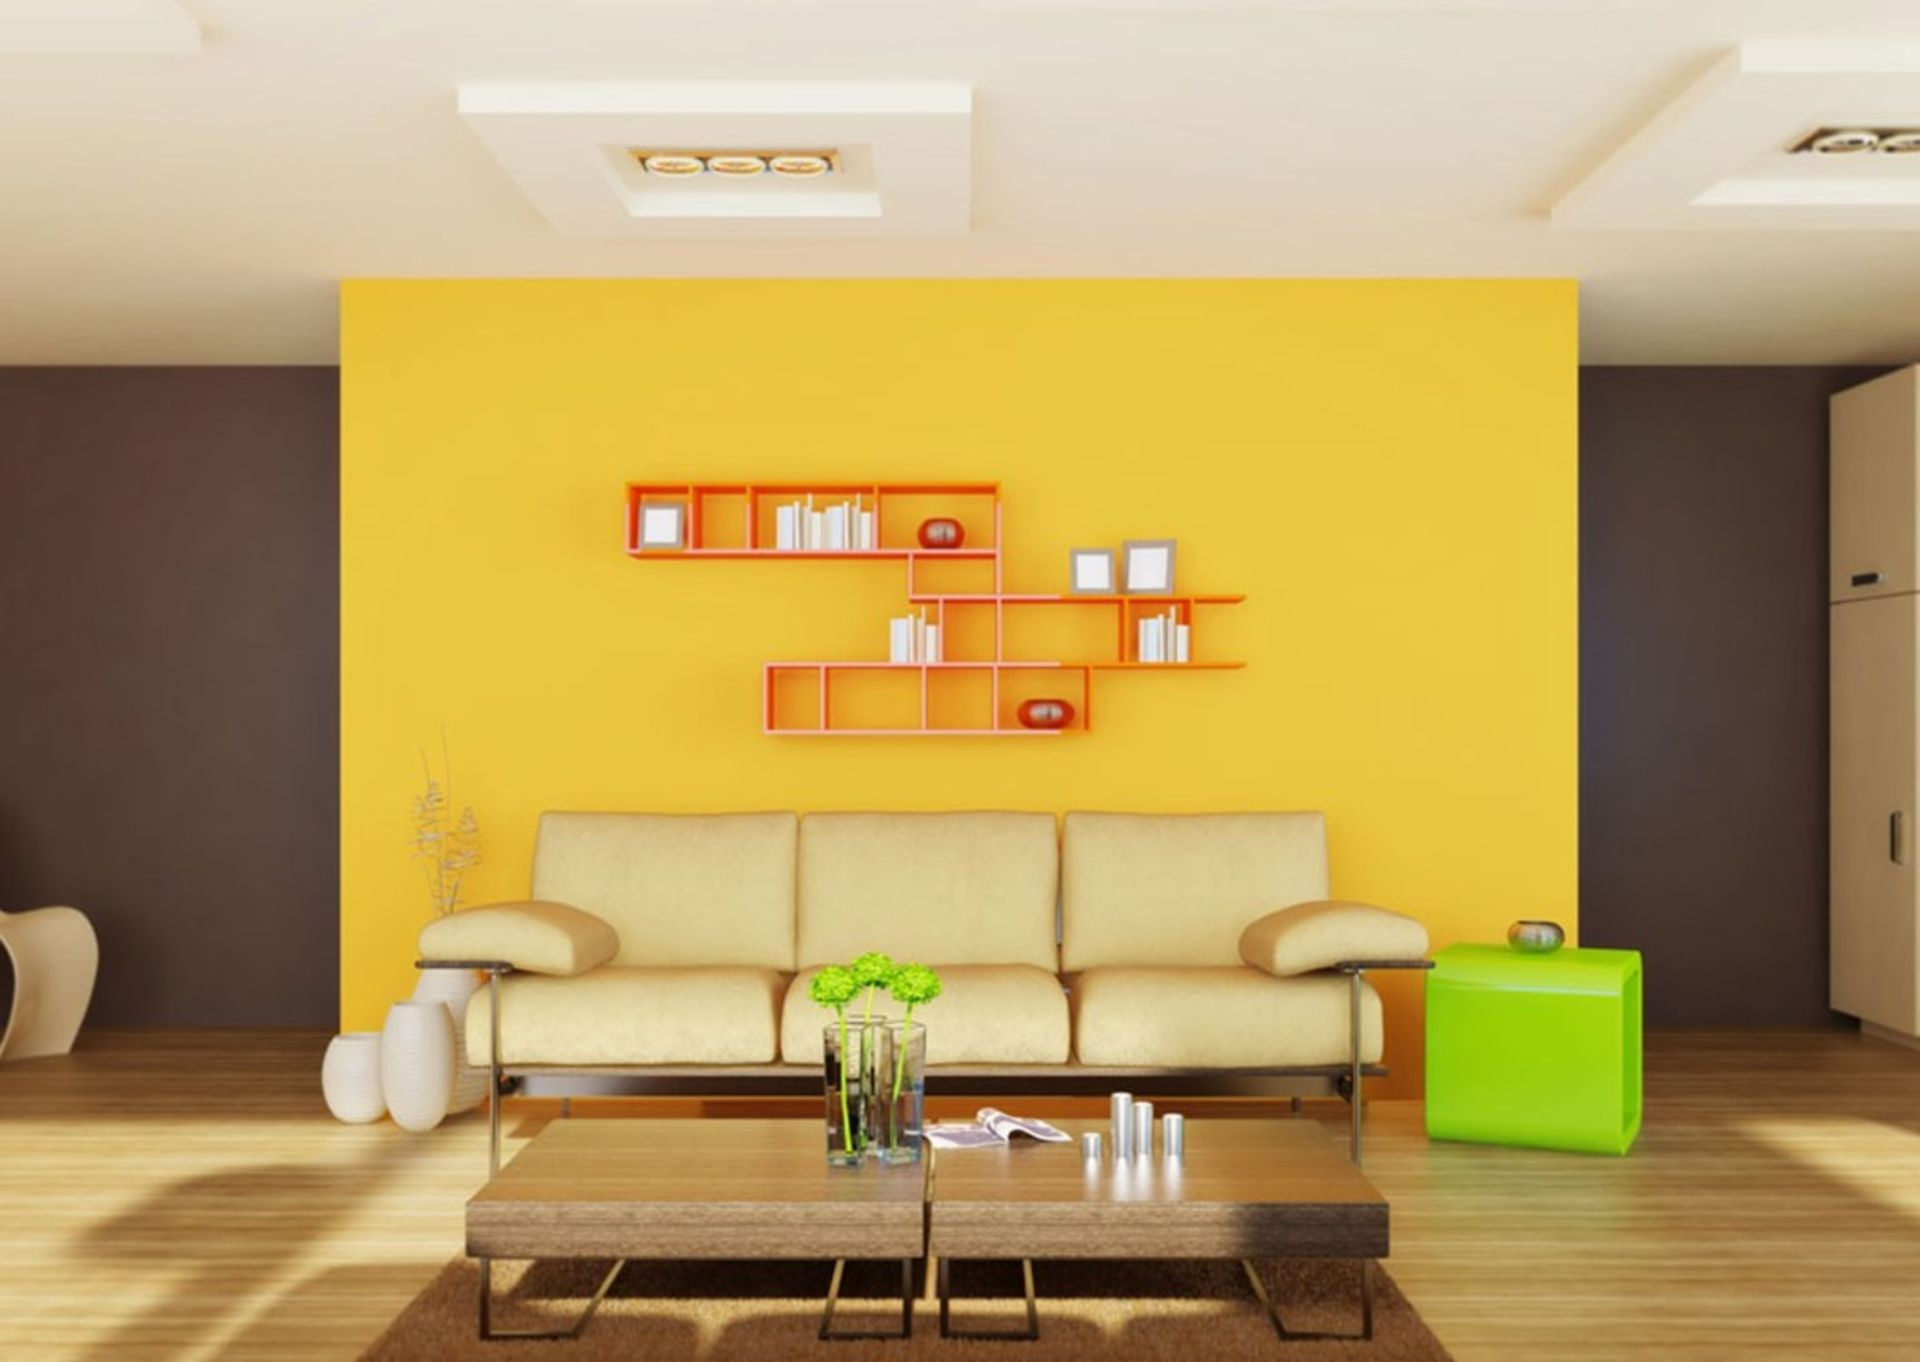 Living Rooms Decorating Ideas with Yellow Color; Yellow Living Rooms Ideas  may be very artistic and nice particularly throughout the summertime.